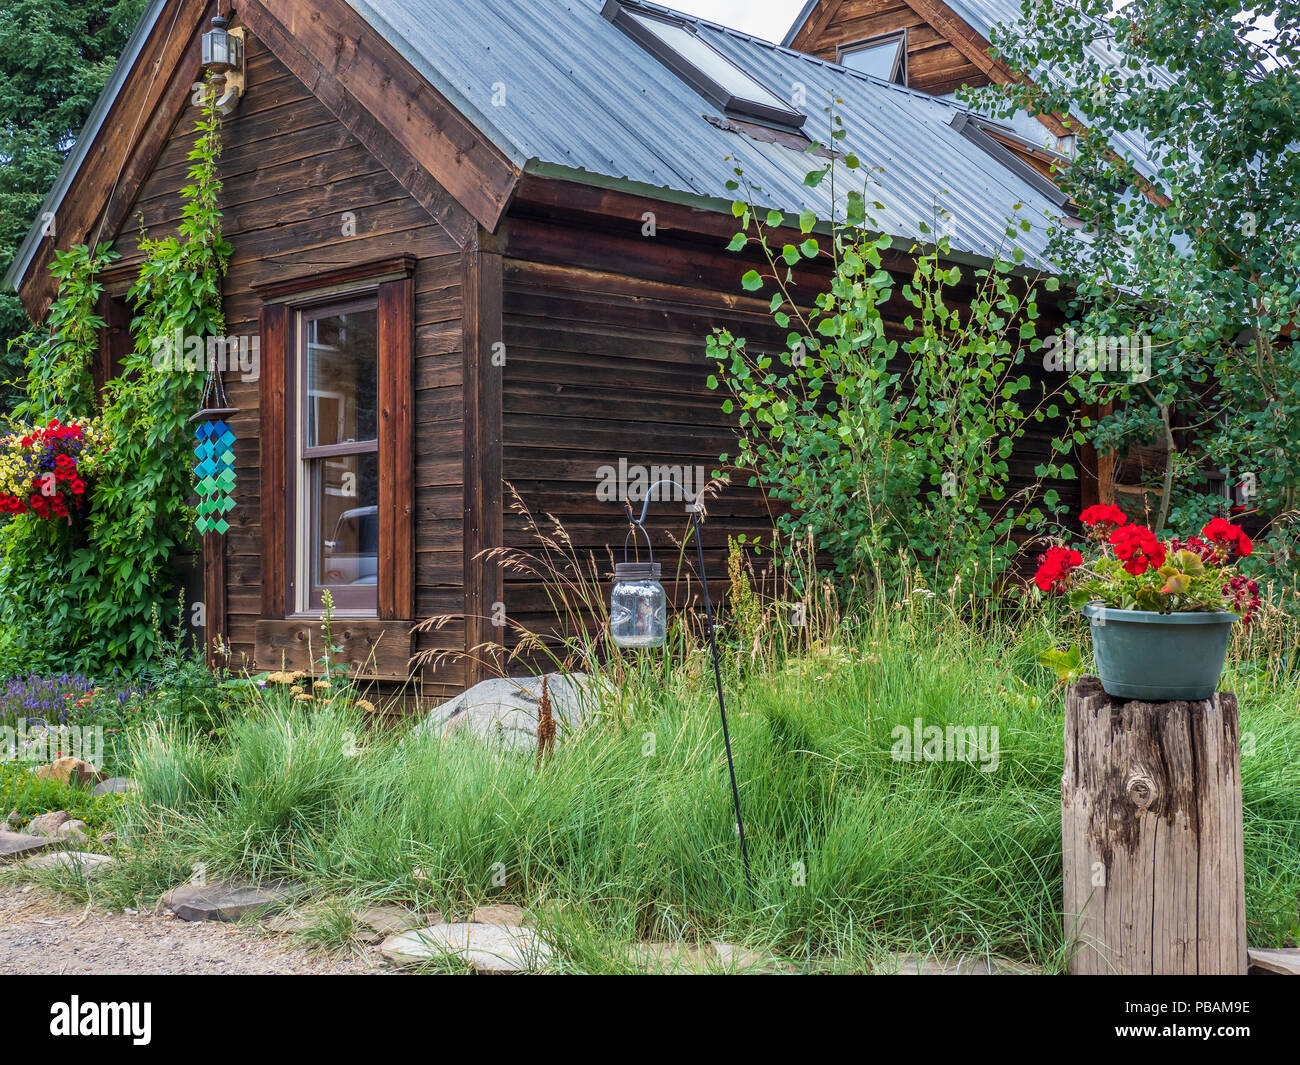 Home, Crested Butte, Colorado. - Stock Image